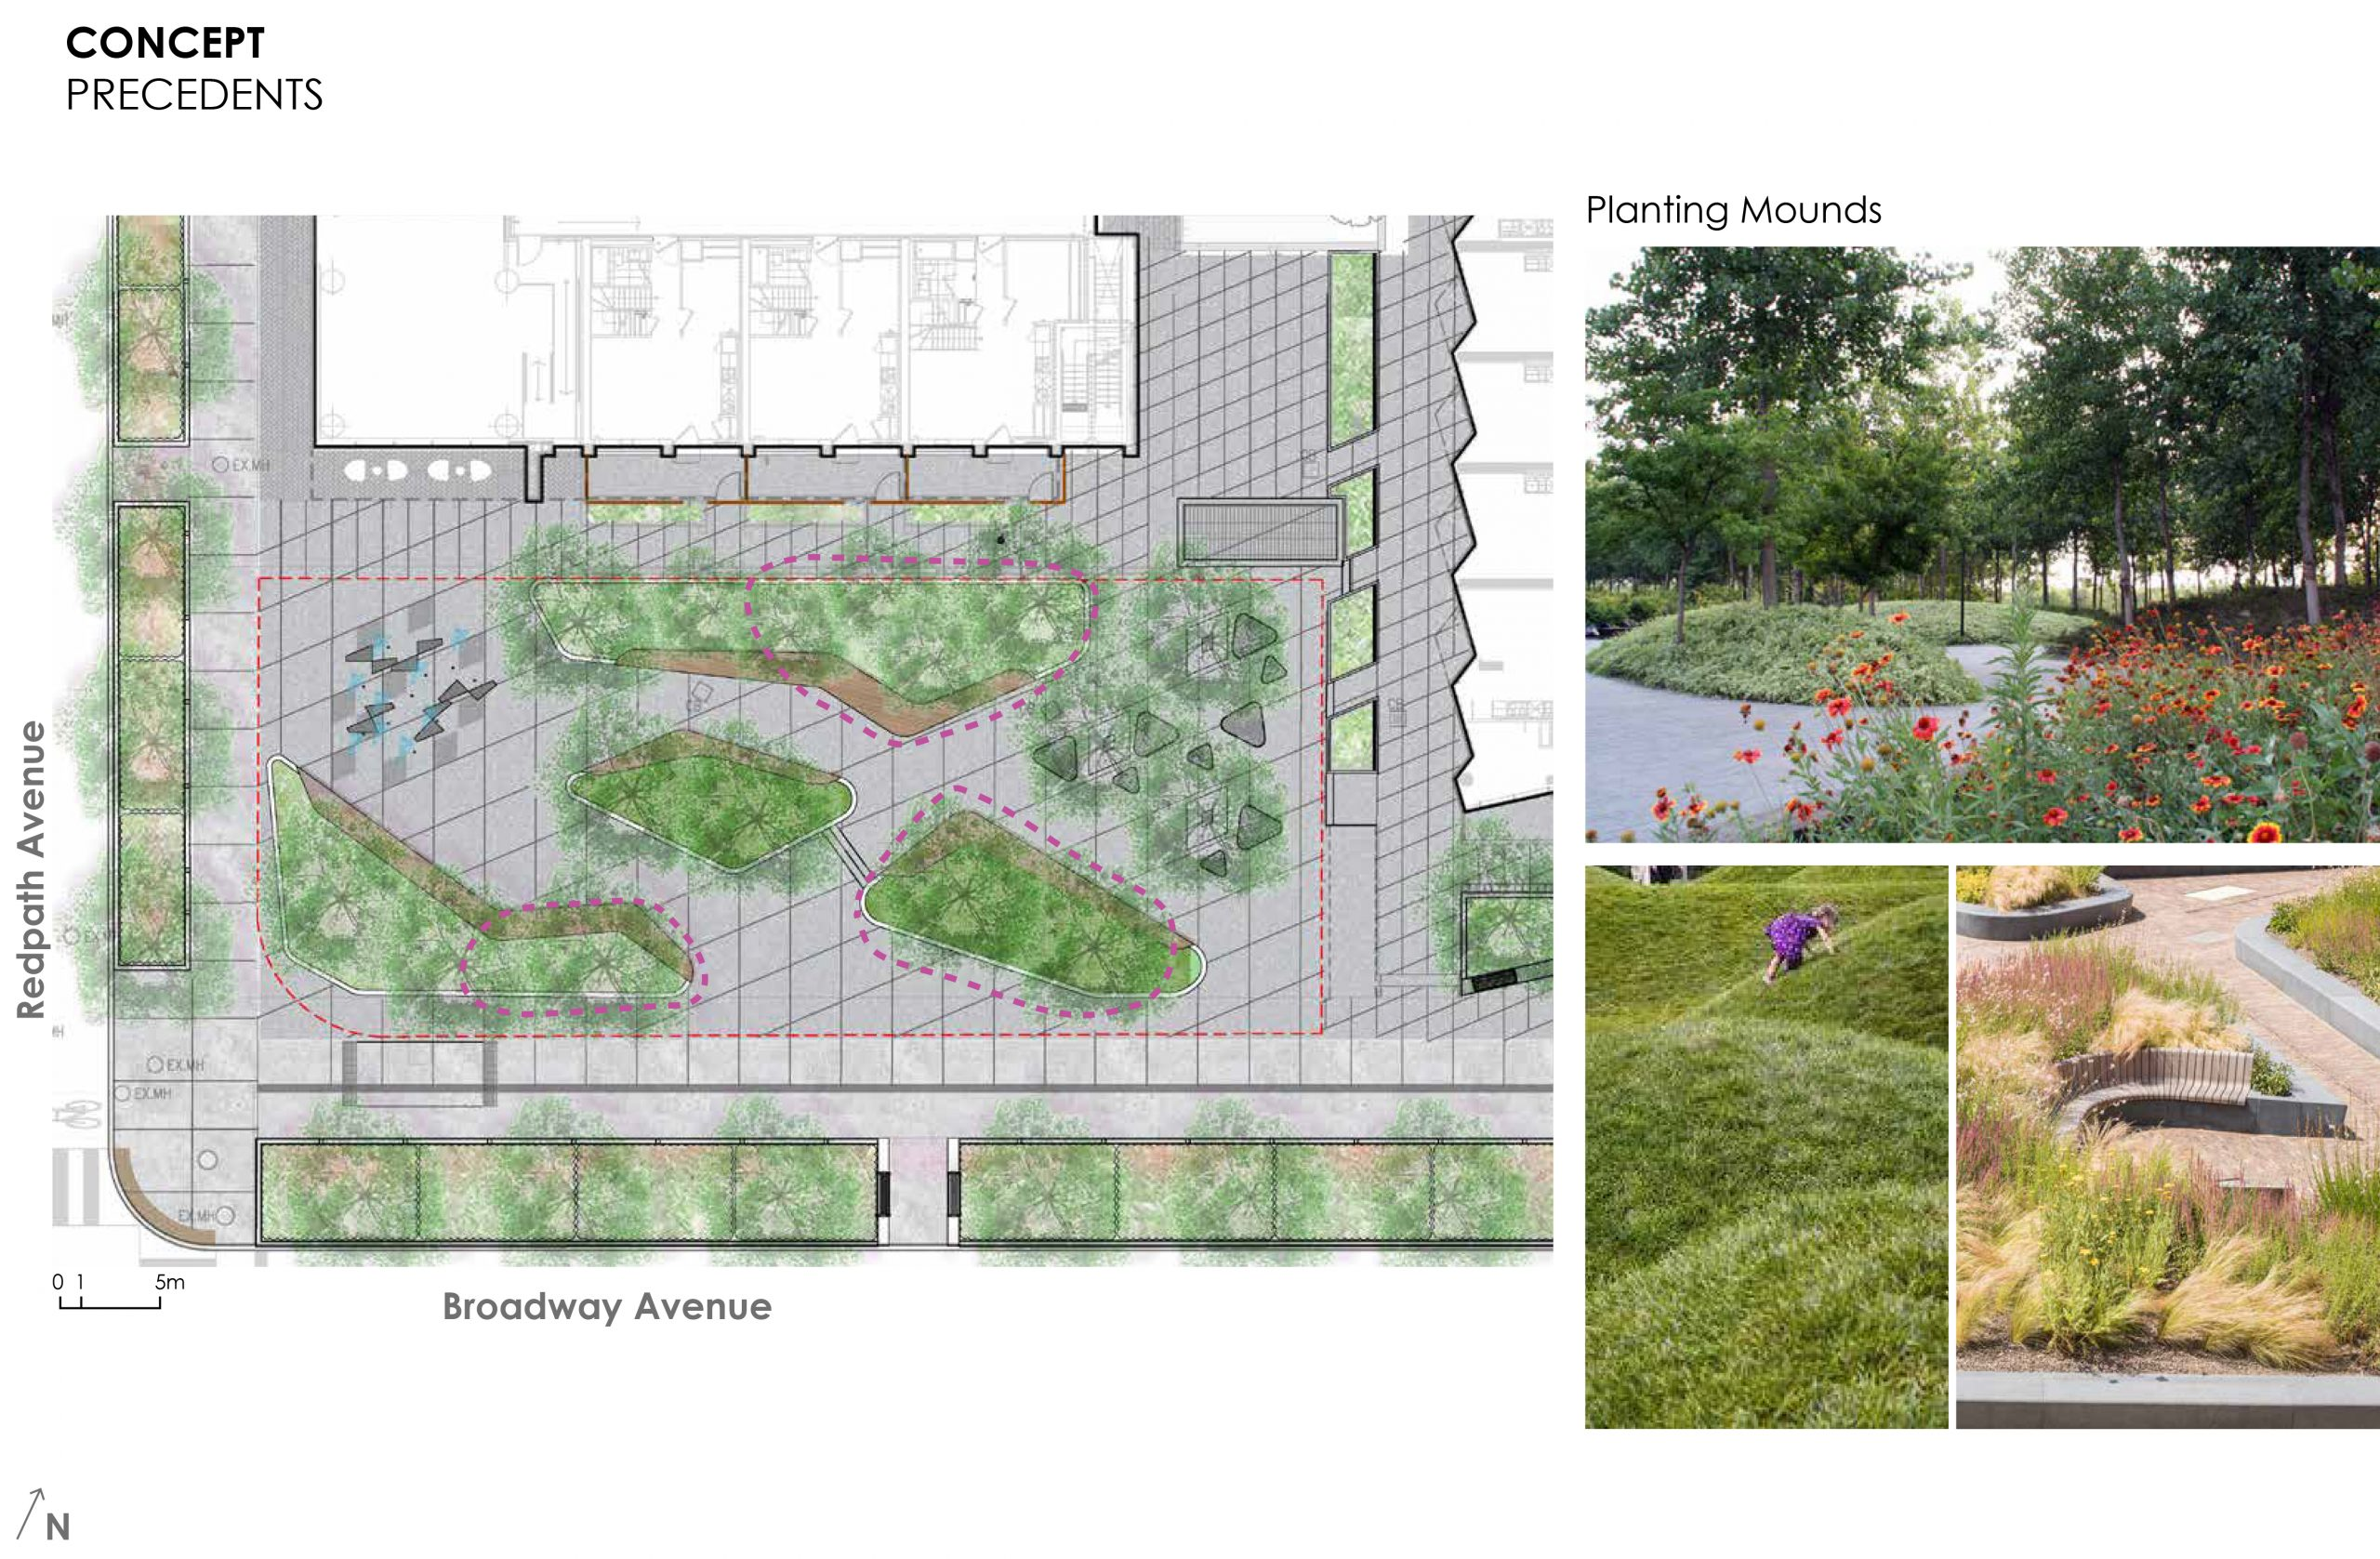 An image that provides some examples of the planting mounds and plant features proposed for the new park. The options are of green grass mounds, tall grass and flower plantings near the seatwalls in the park.